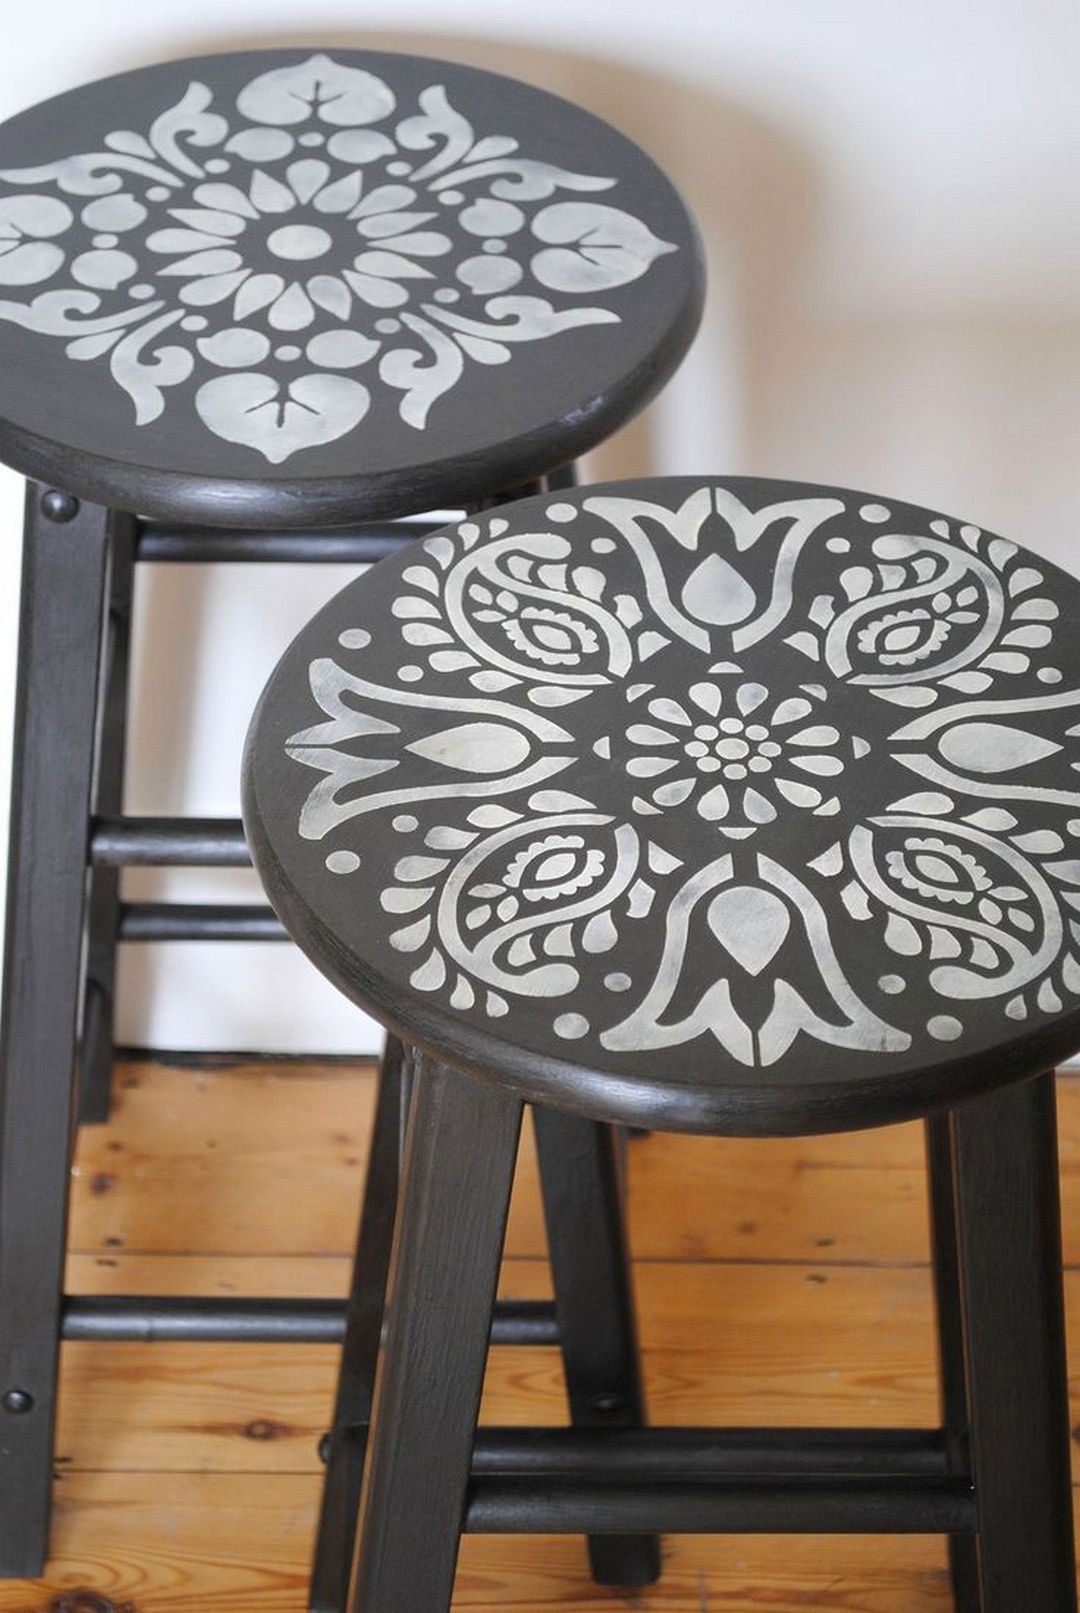 Marvelous 15 Painted Wicker Furniture Ideas To Adorn Your Home Uwap Interior Chair Design Uwaporg